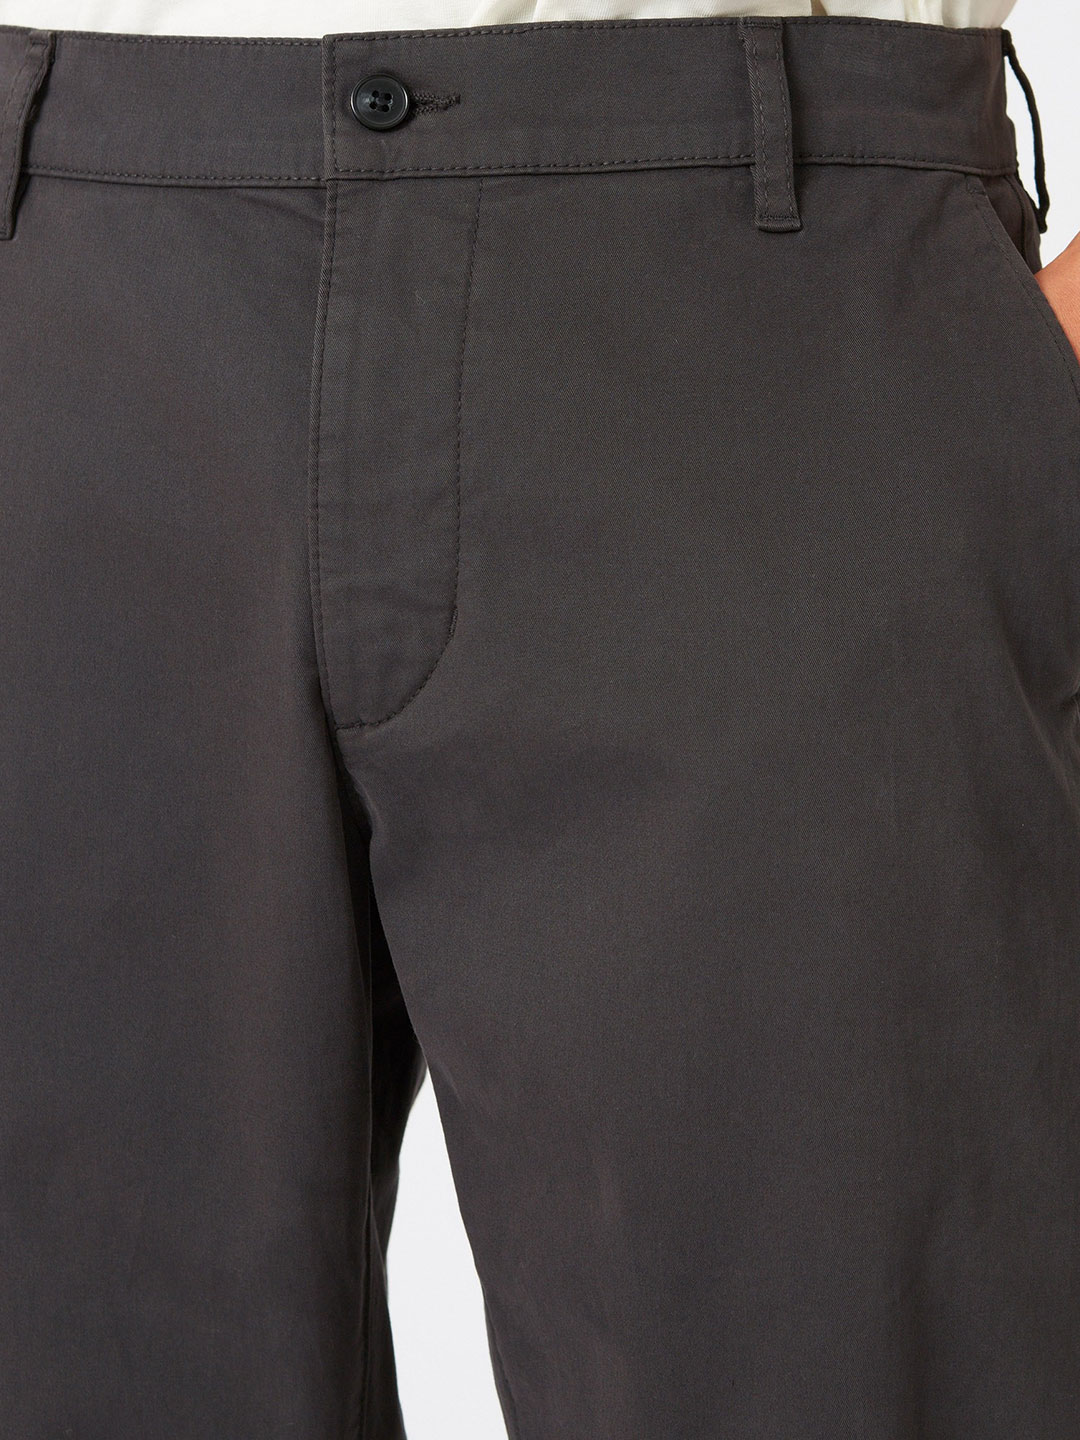 B1345-Nash-Trouser-Hope-Sthlm-Faded-Black-Front-Close-Up